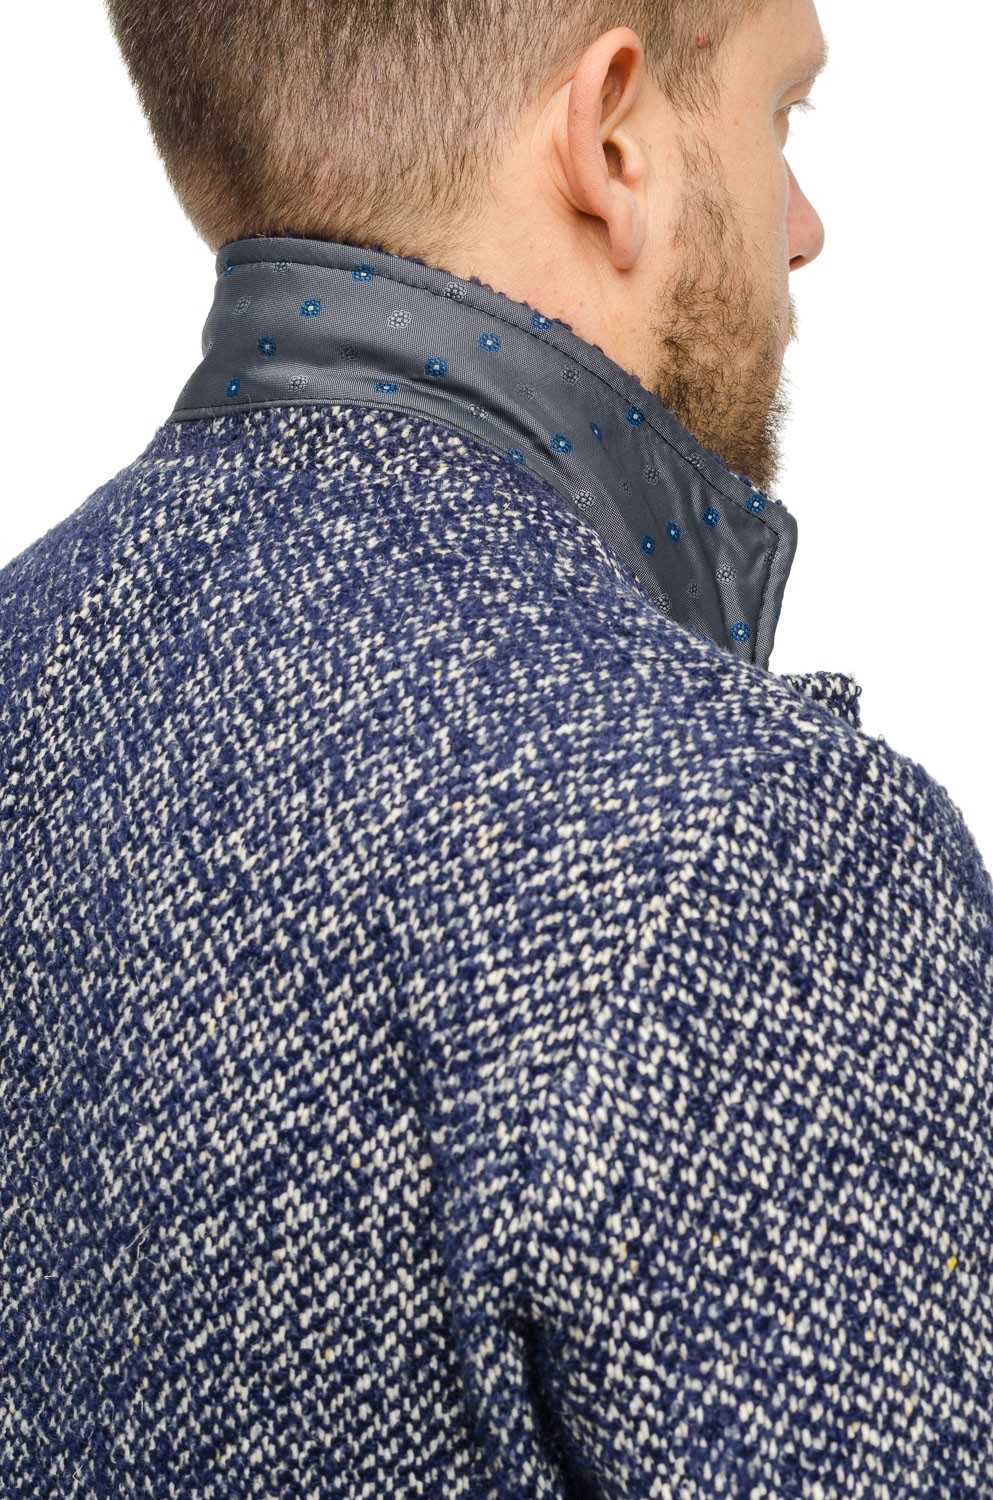 MINUSH | Cappotto Long tweed Blu